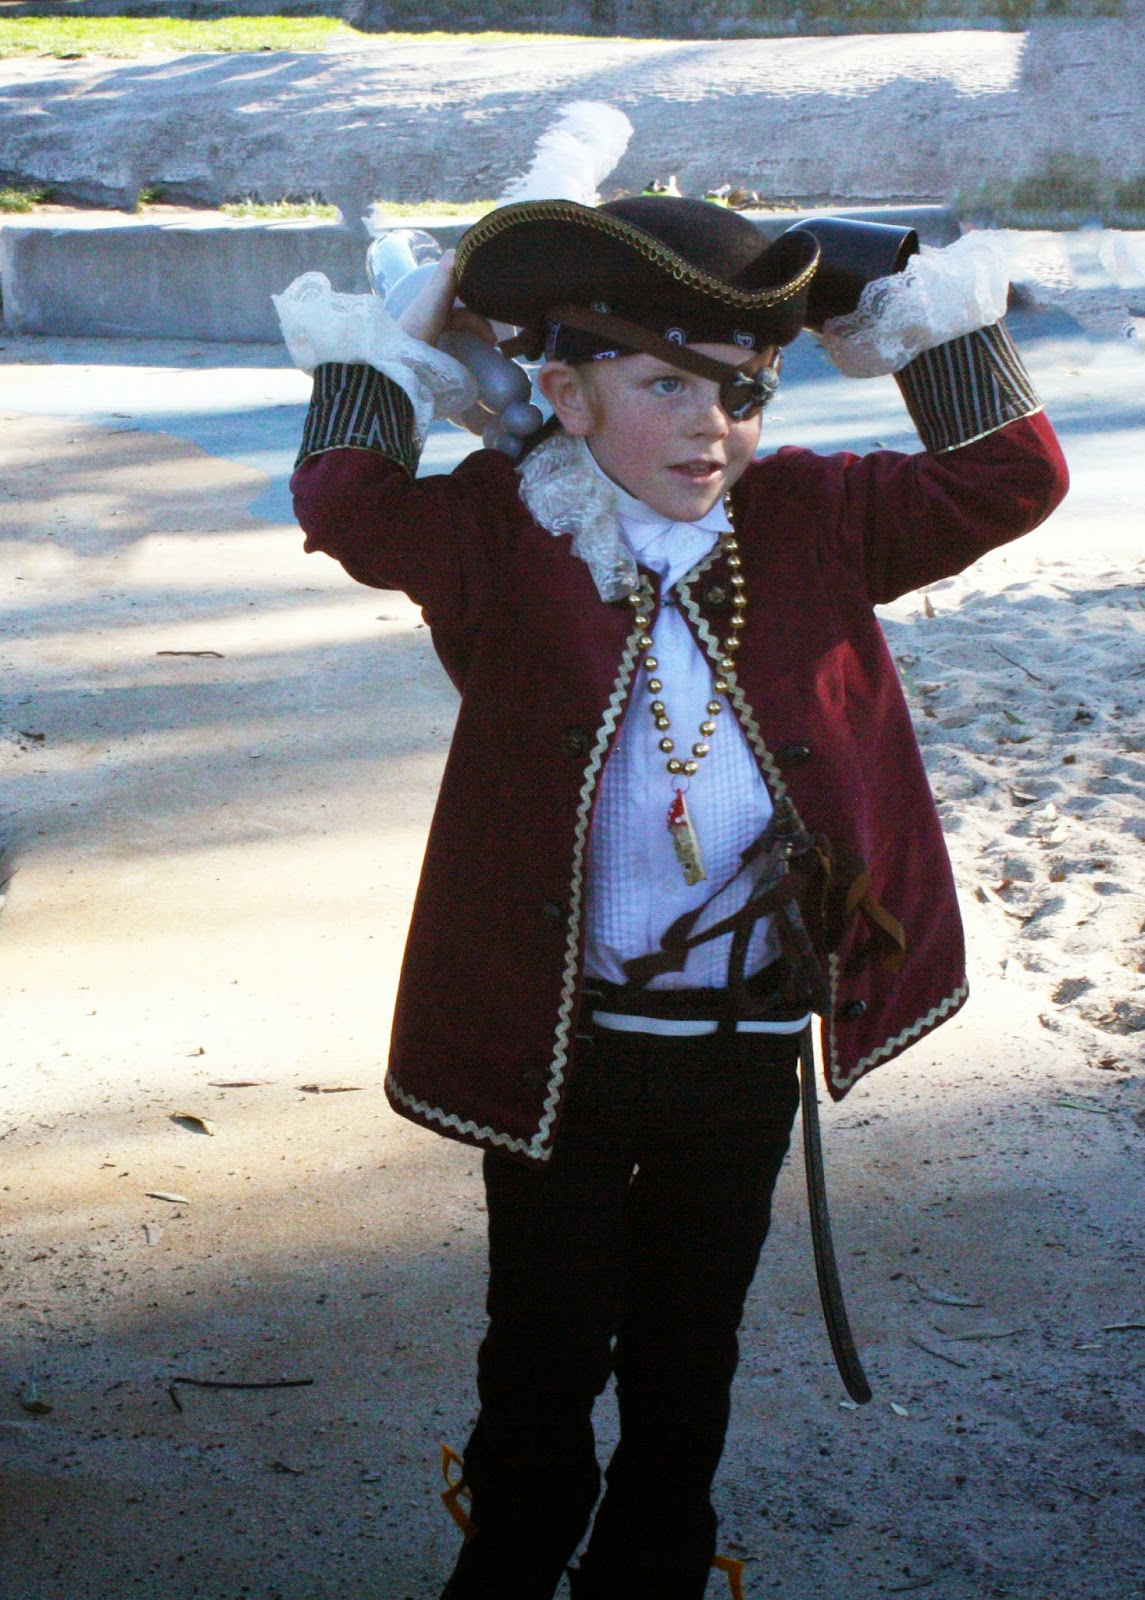 Boy's Pirate Costume